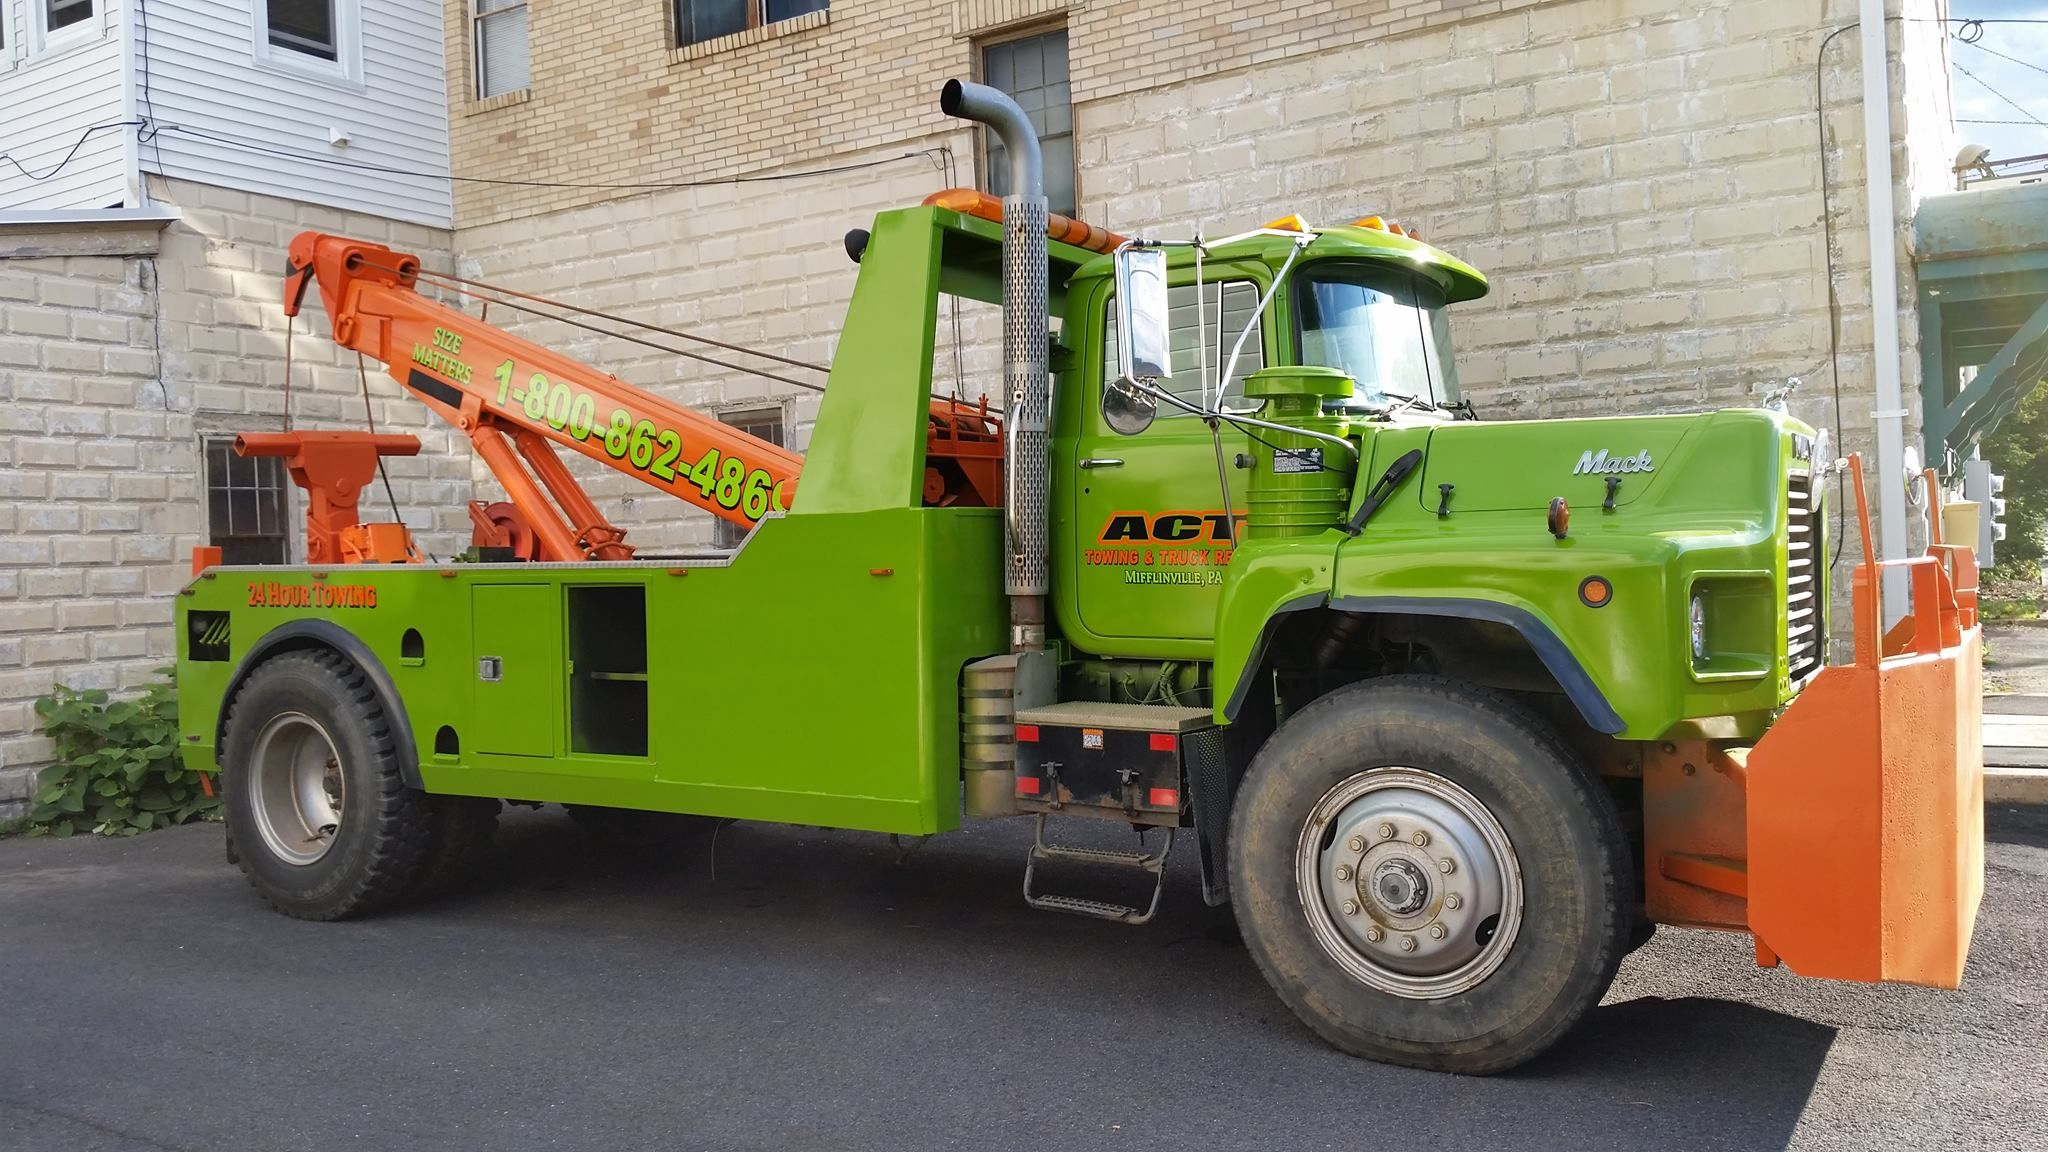 Act towing mifflinville pa